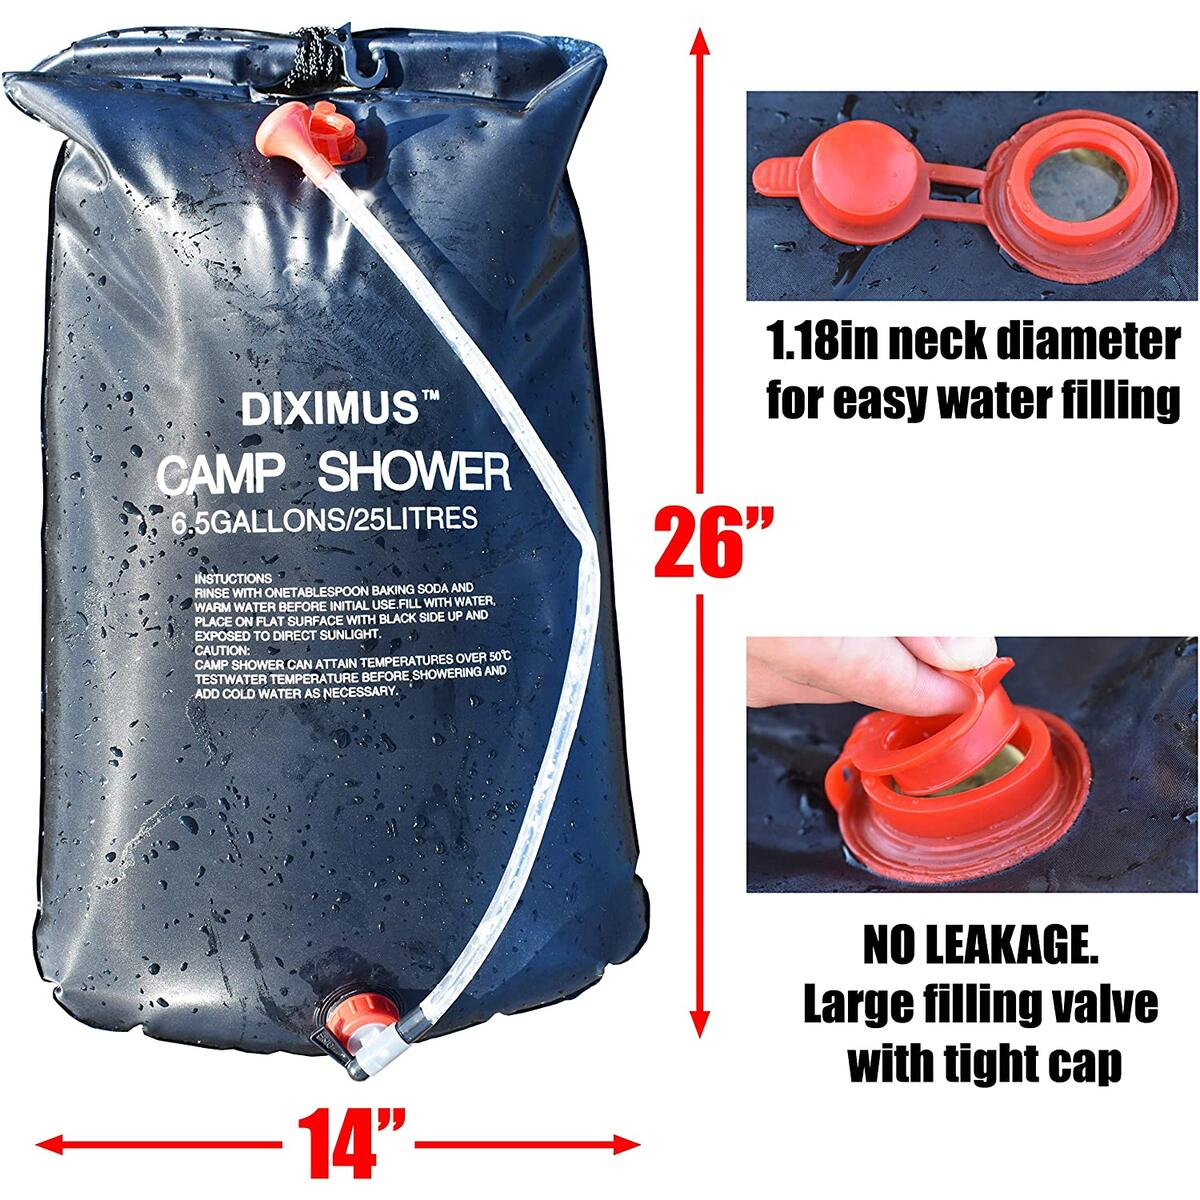 Camping Shower - Outdoor Shower – Solar Shower Bag 6.5 Gallons - 25L - Portable Showers for Camp Traveling Hiking Summer